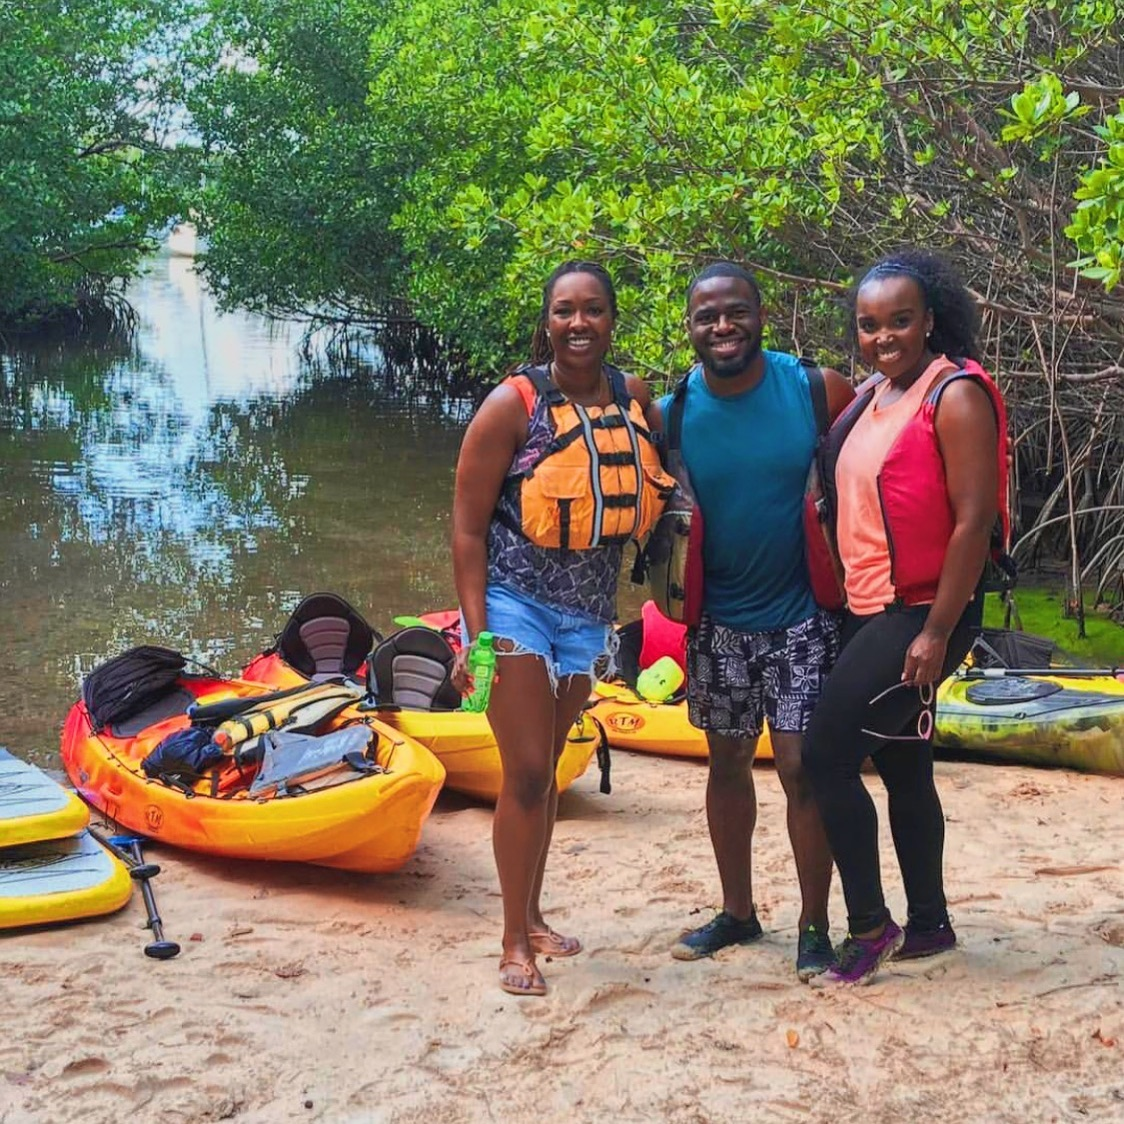 Daily Kayak Rentals - Online Reservations available. Walk-ins are welcomed.